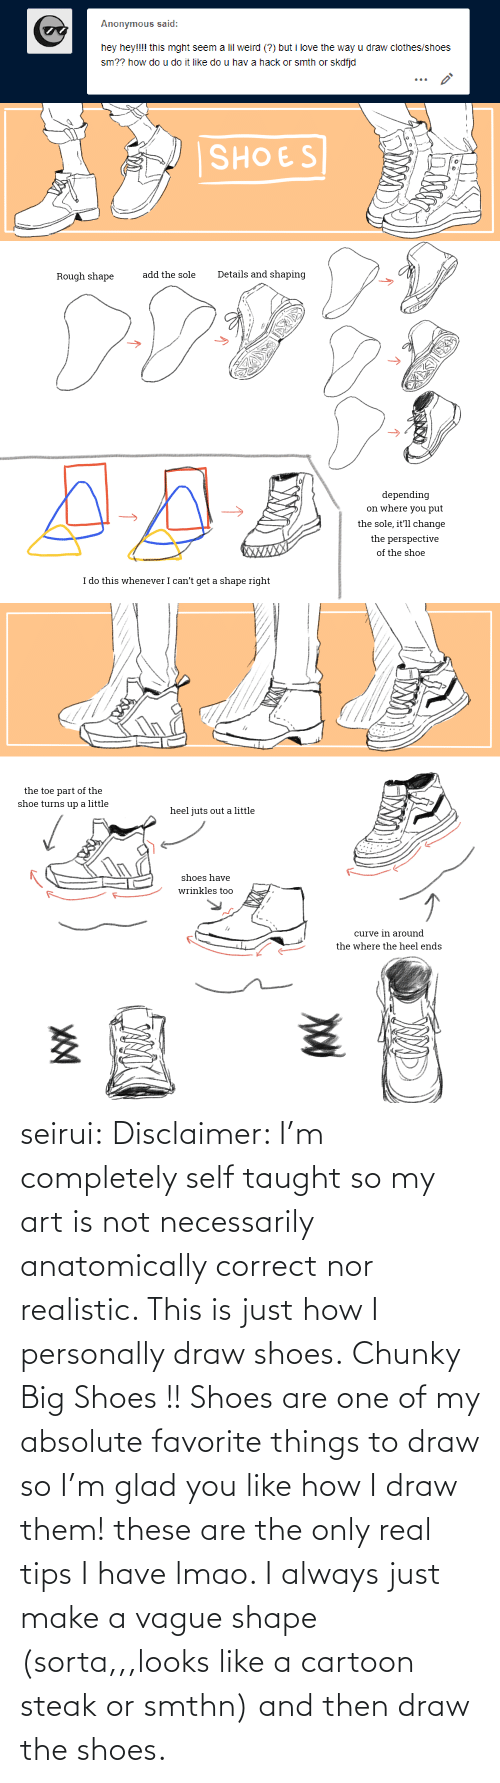 taught: Anonymous said:  hey hey!!!! this mght seem a lil weird (?) but i love the way u draw clothes/shoes  sm?? how do u do it like do u hav a hack or smth or skdfjd   SHOES  Details and shaping  add the sole  Rough shape  depending  on where you put  the sole, it'll change  the perspective  XWXXX  of the shoe  I do this whenever I can't get a shape right   the toe part of the  shoe turns up a little  heel juts out a little  shoes have  wrinkles too  curve in around  the where the heel ends seirui: Disclaimer: I'm completely self taught so my art is not necessarily anatomically correct nor realistic. This is just how I personally draw shoes. Chunky Big Shoes !! Shoes are one of my absolute favorite things to draw so I'm glad you like how I draw them! these are the only real tips I have lmao. I always just make a vague shape (sorta,,,looks like a cartoon steak or smthn) and then draw the shoes.